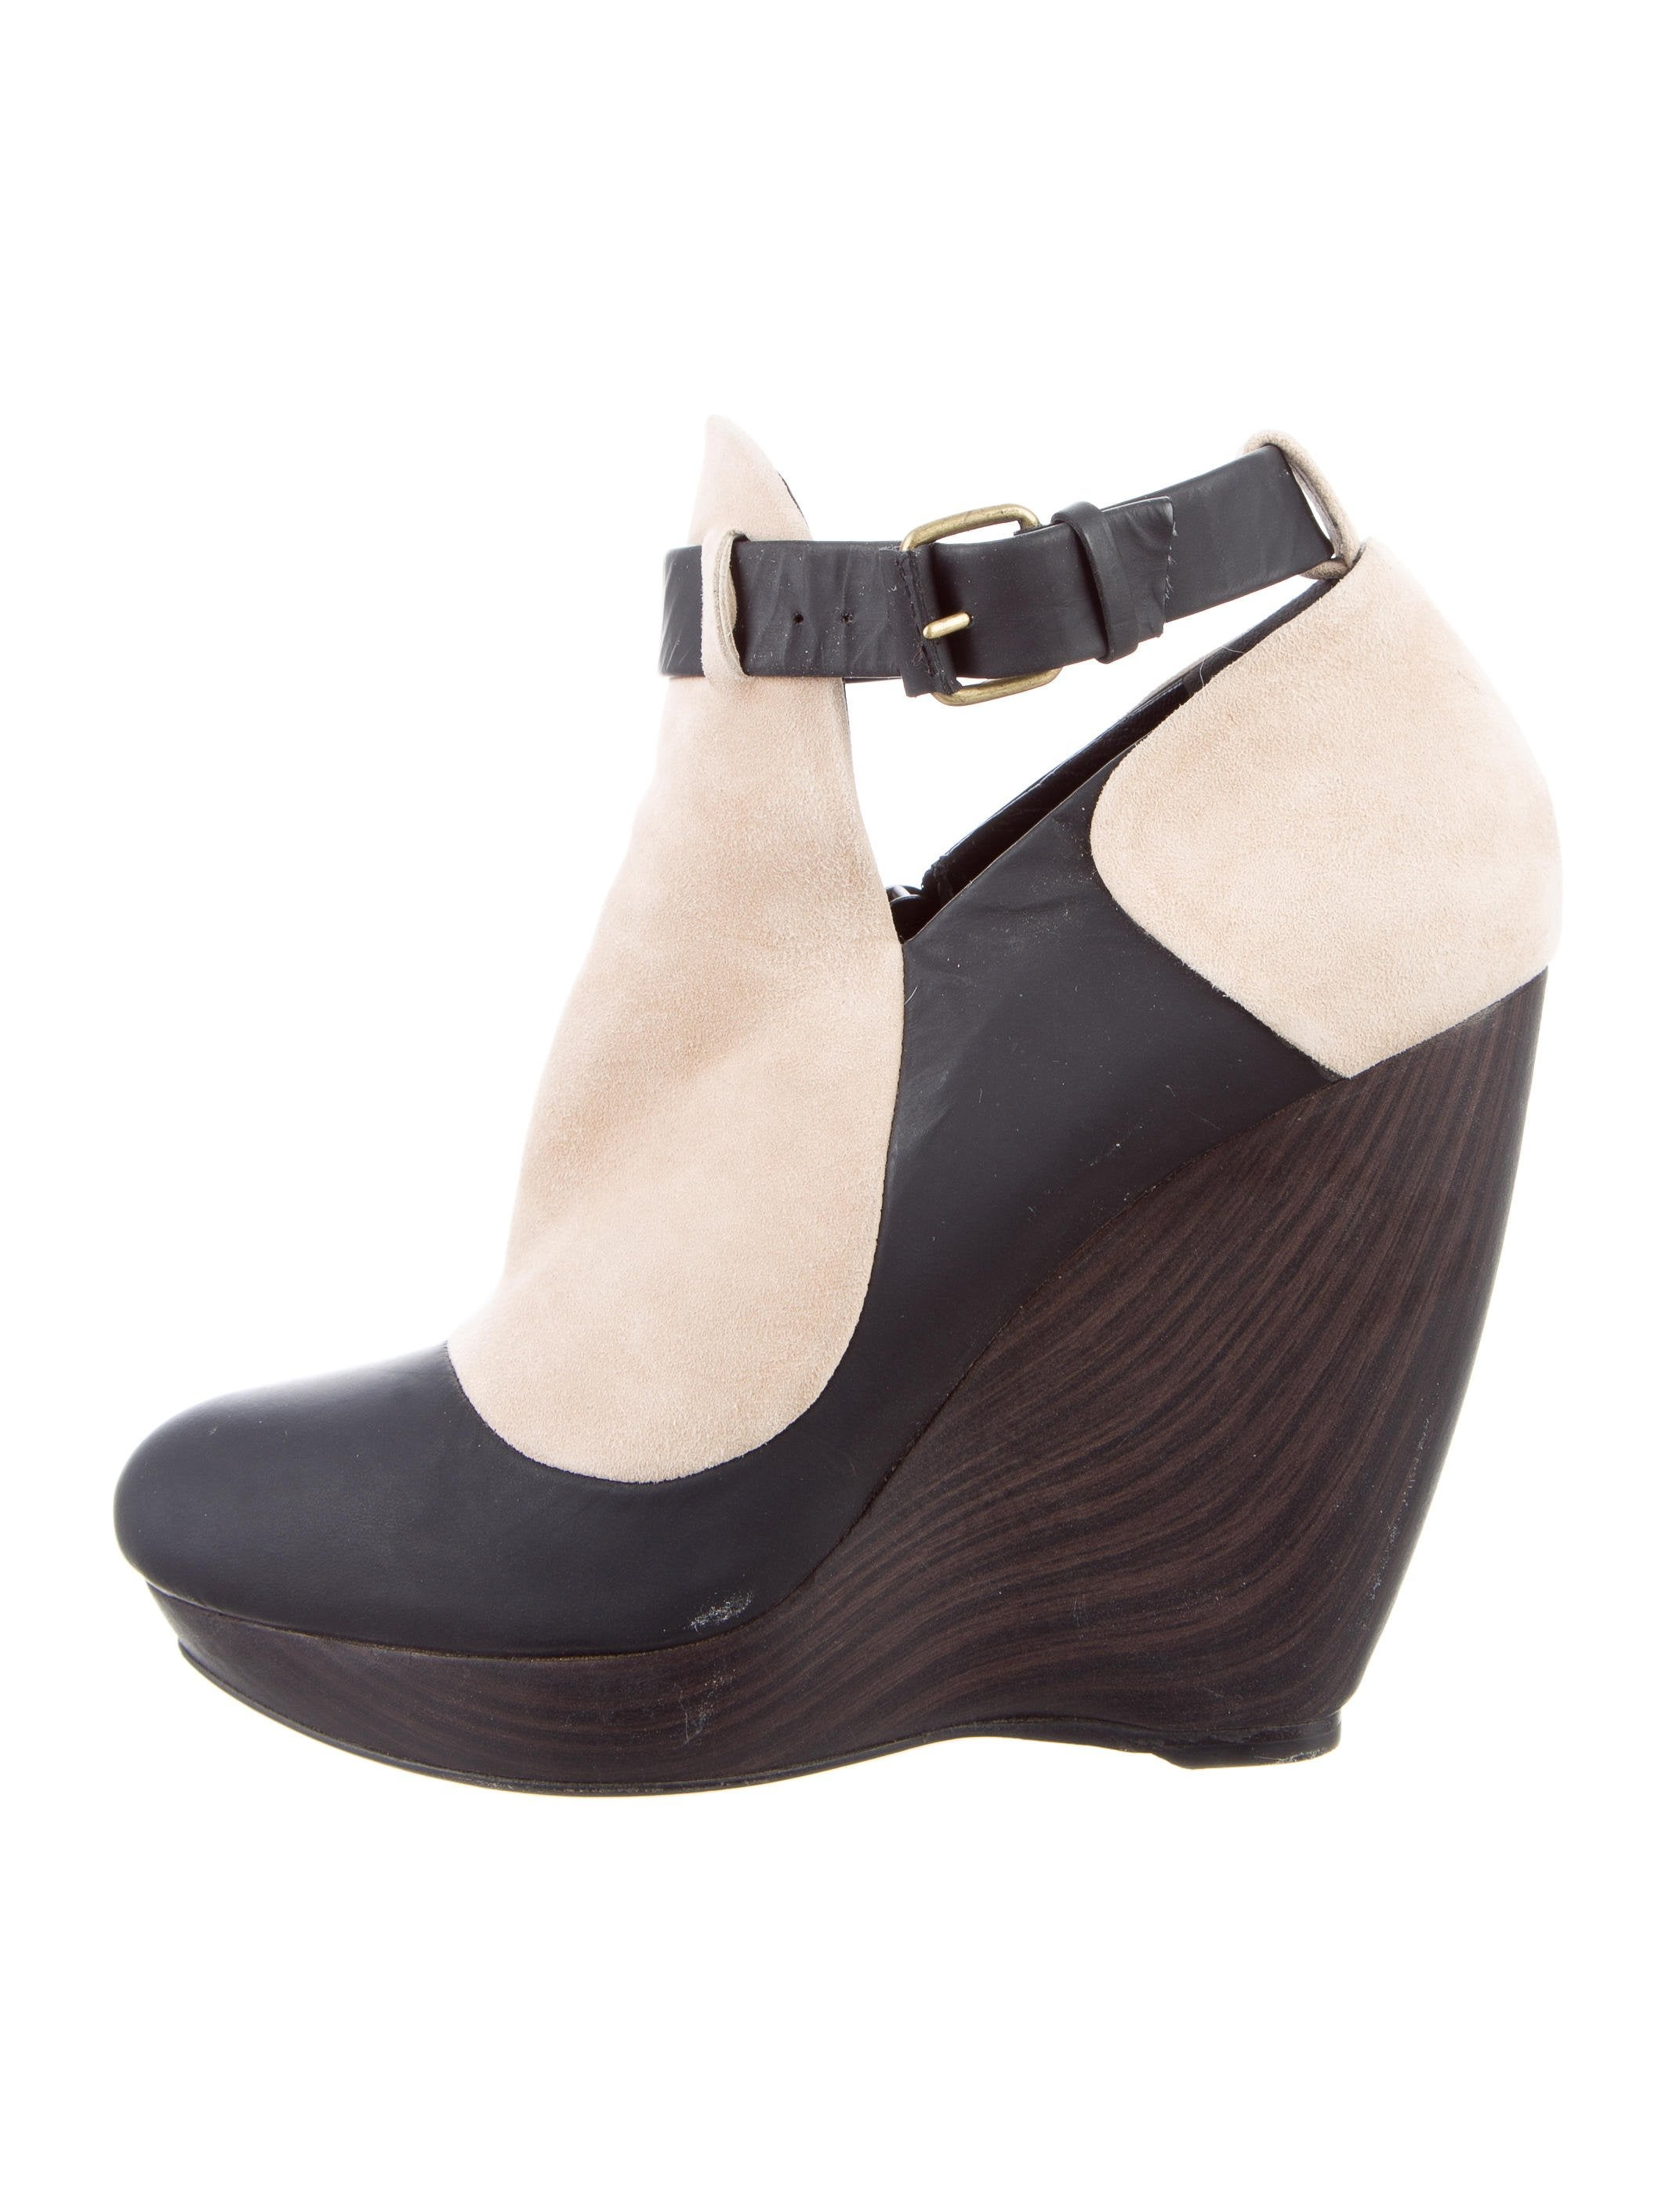 Balenciaga Colorblock Wedge Booties